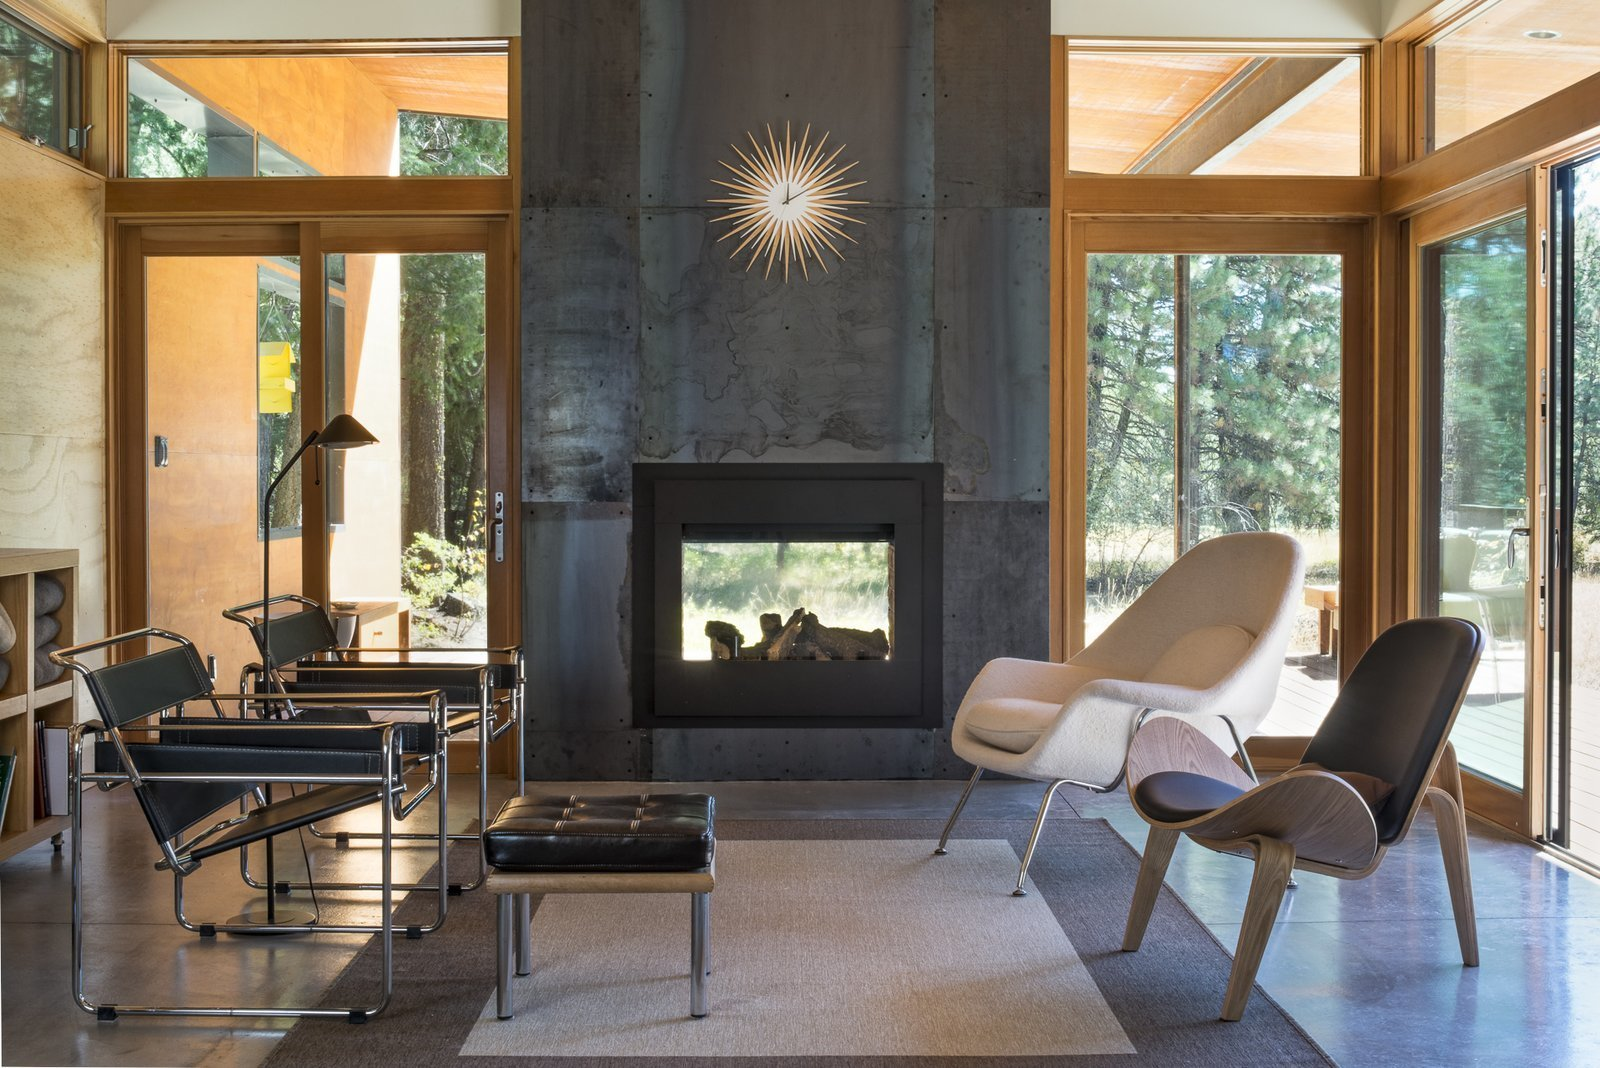 10 modern fireplaces that make for inviting interiors dwell